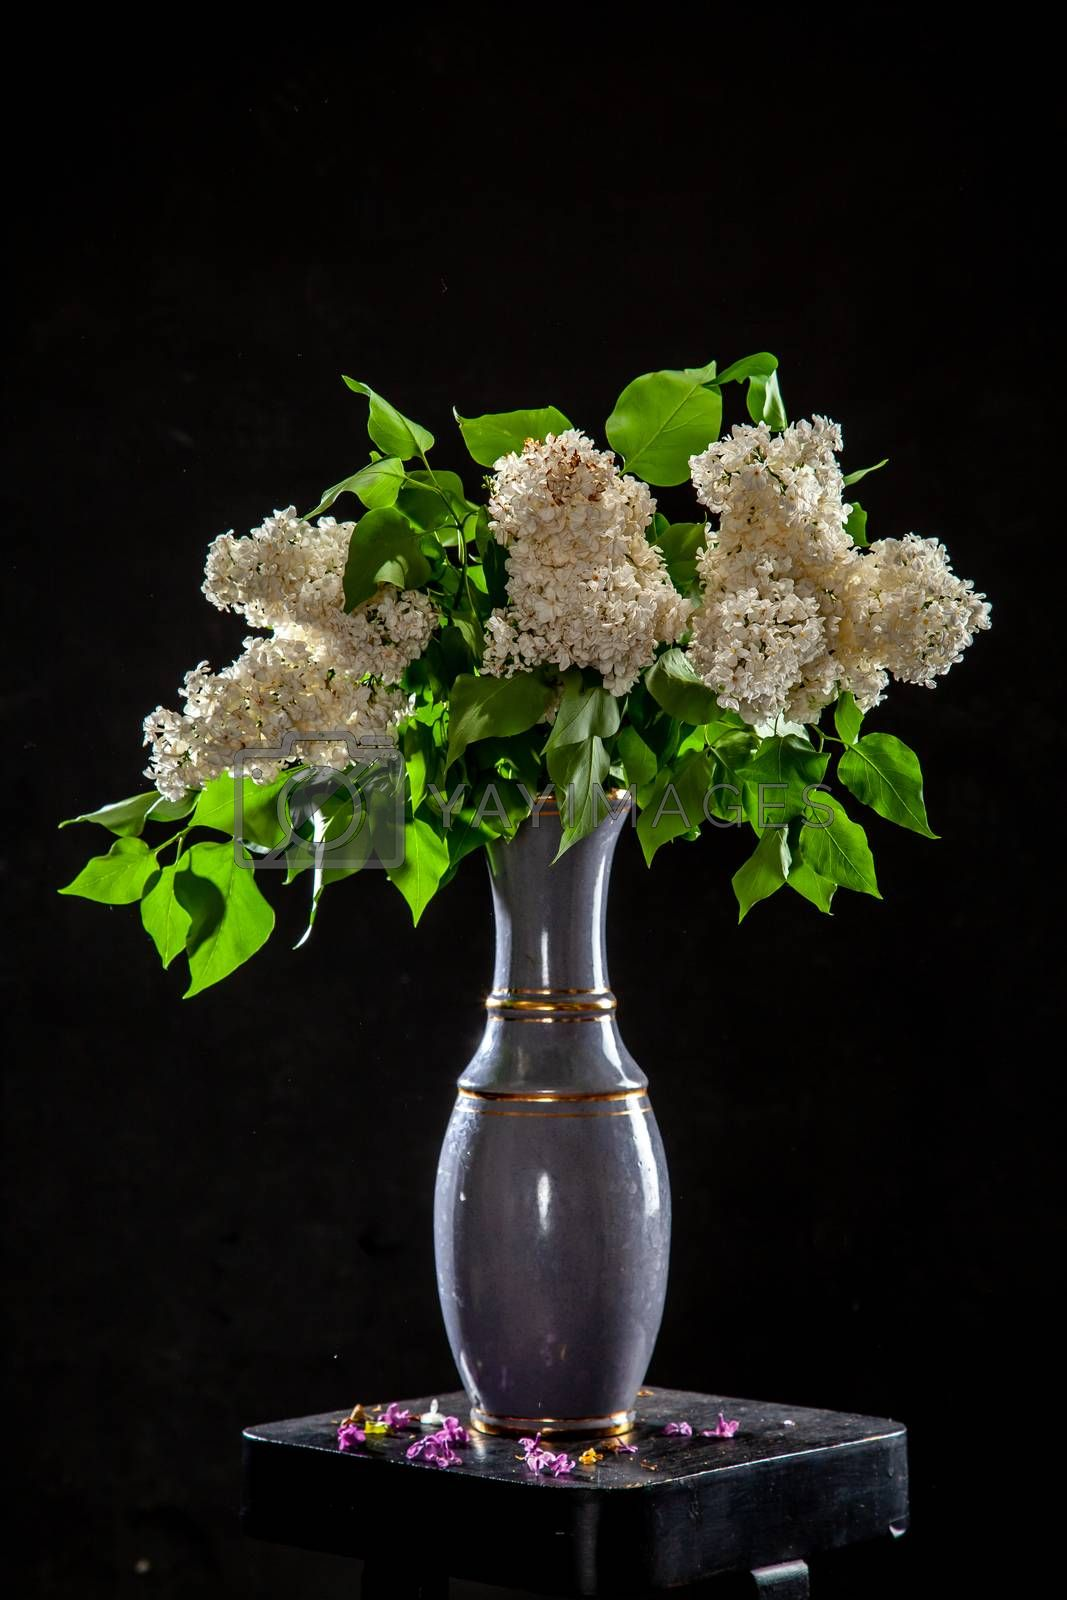 White branches of lilac in vase on black background. Spring branch of blooming lilac on the table with black background. Fallen lilac flowers on the table.